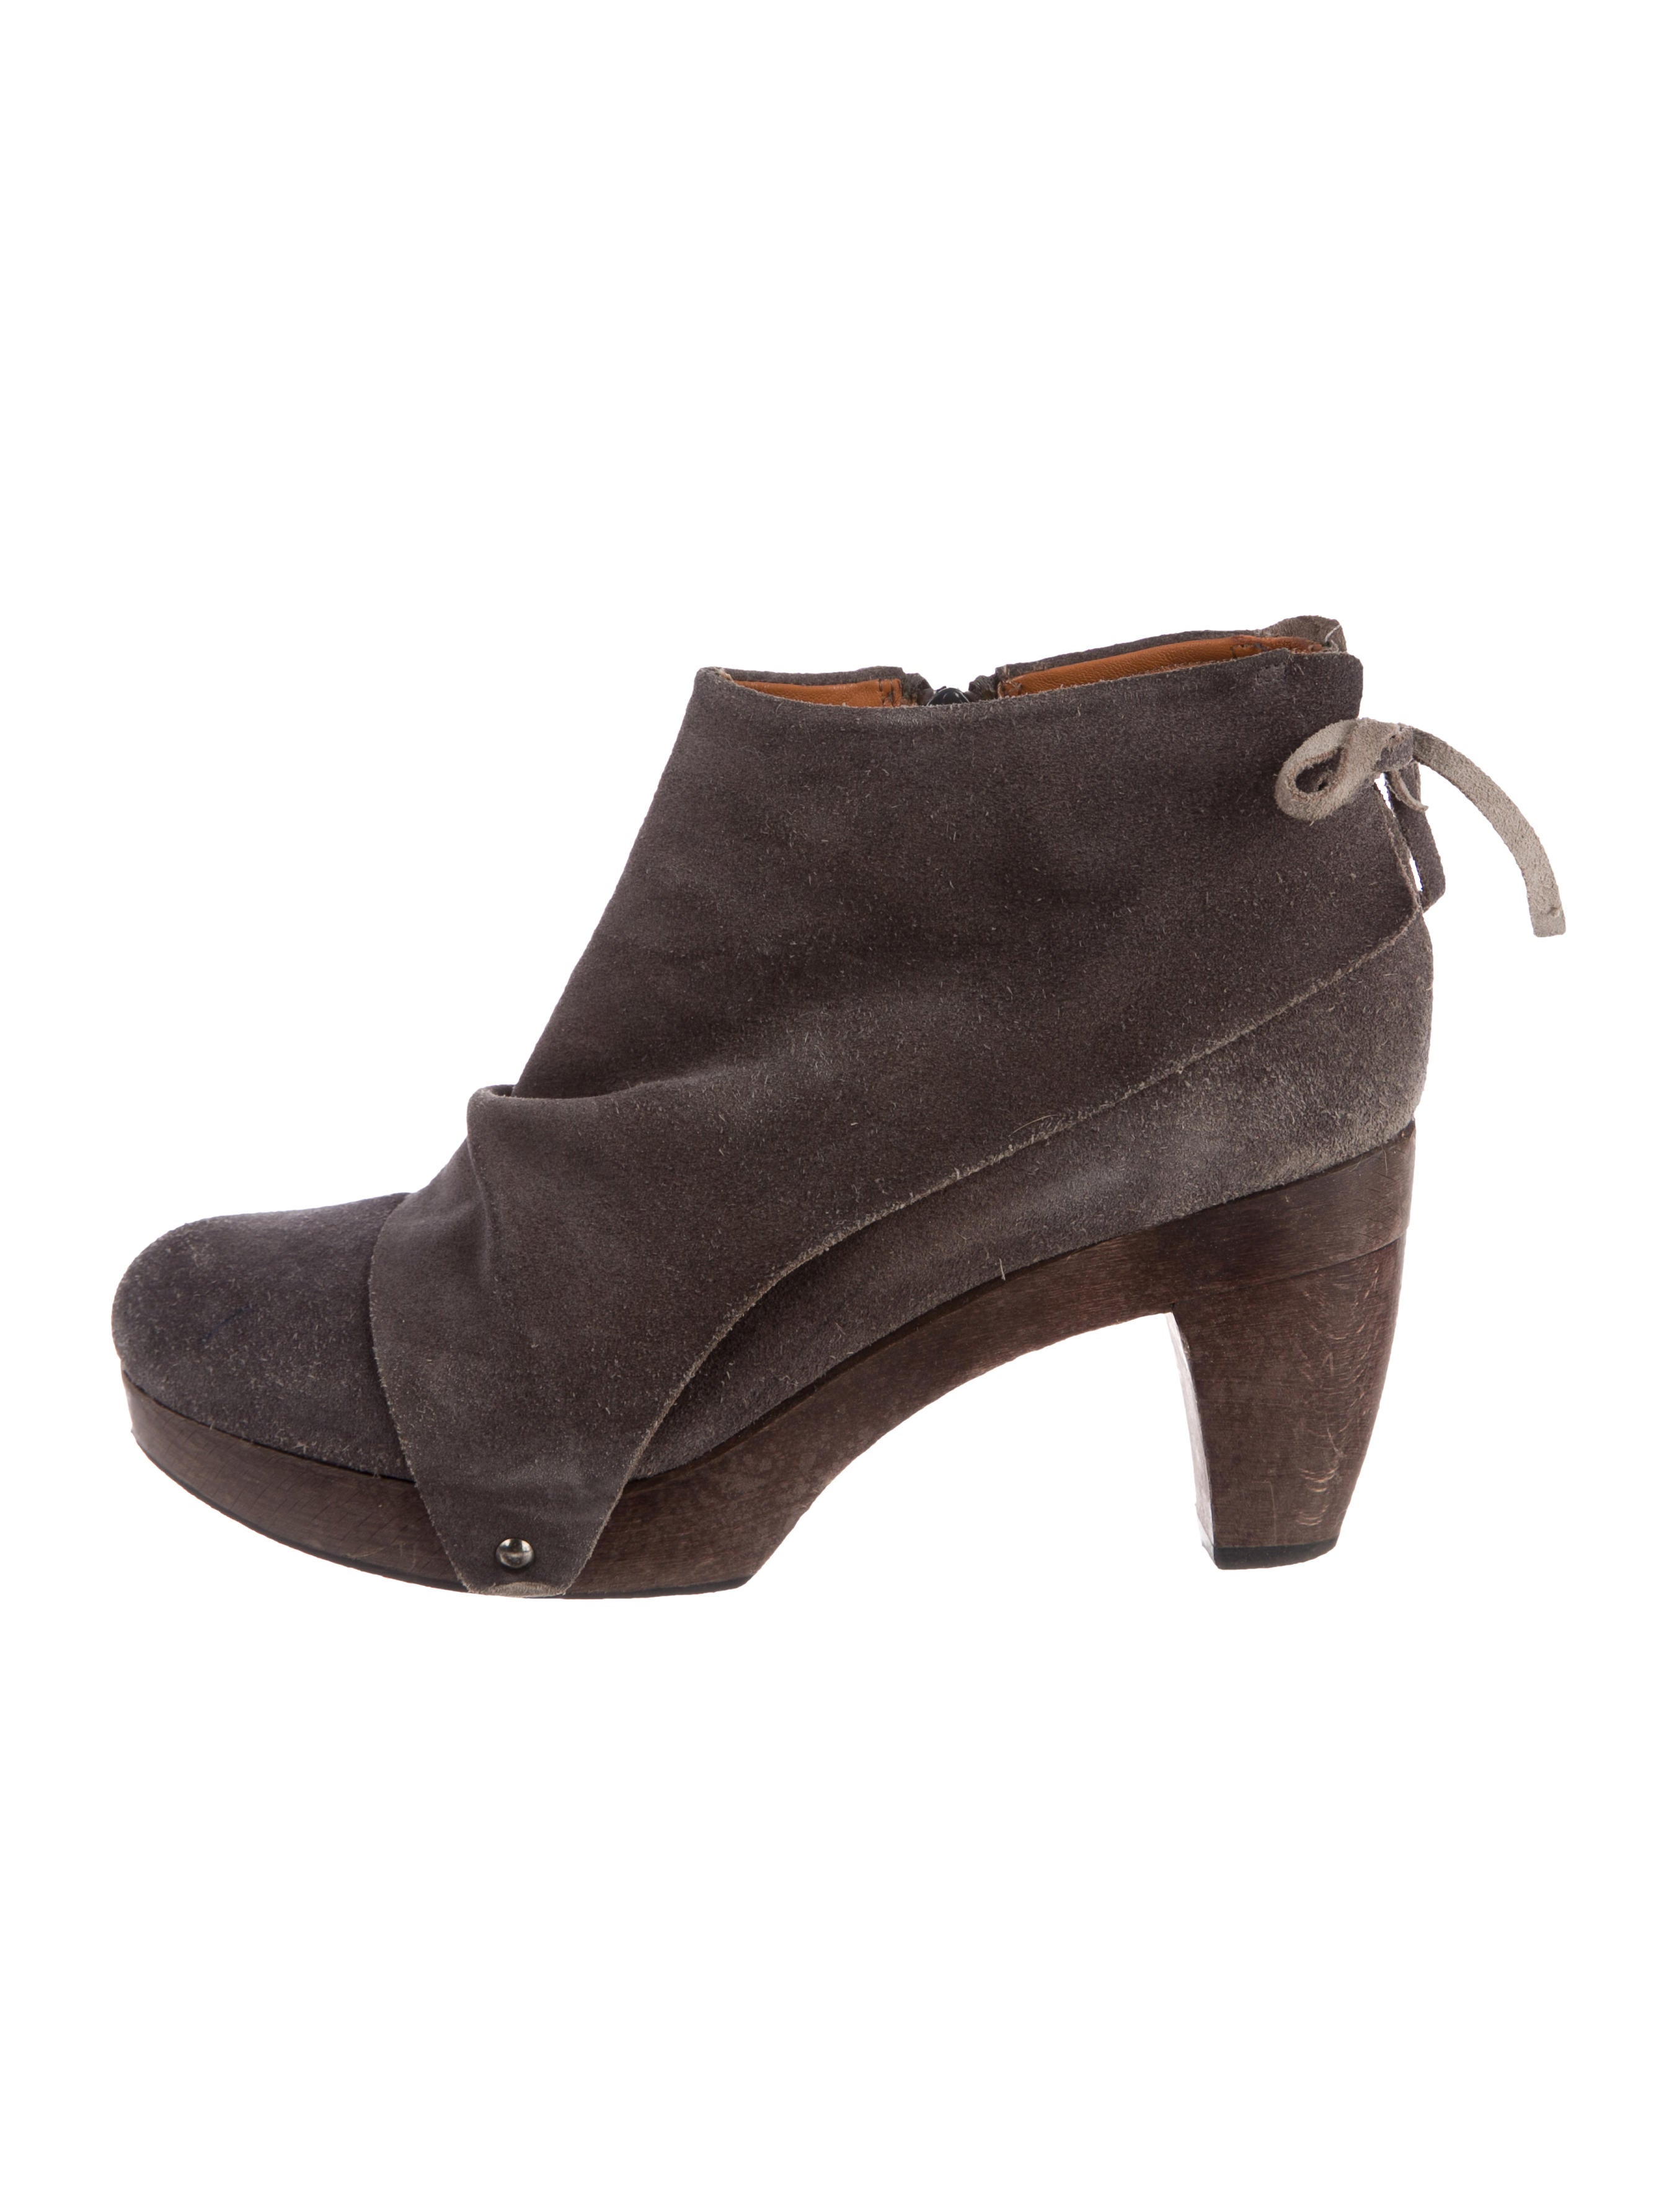 Coclico Suede Round-Toe Booties clearance new for sale 2014 1APNv7YK